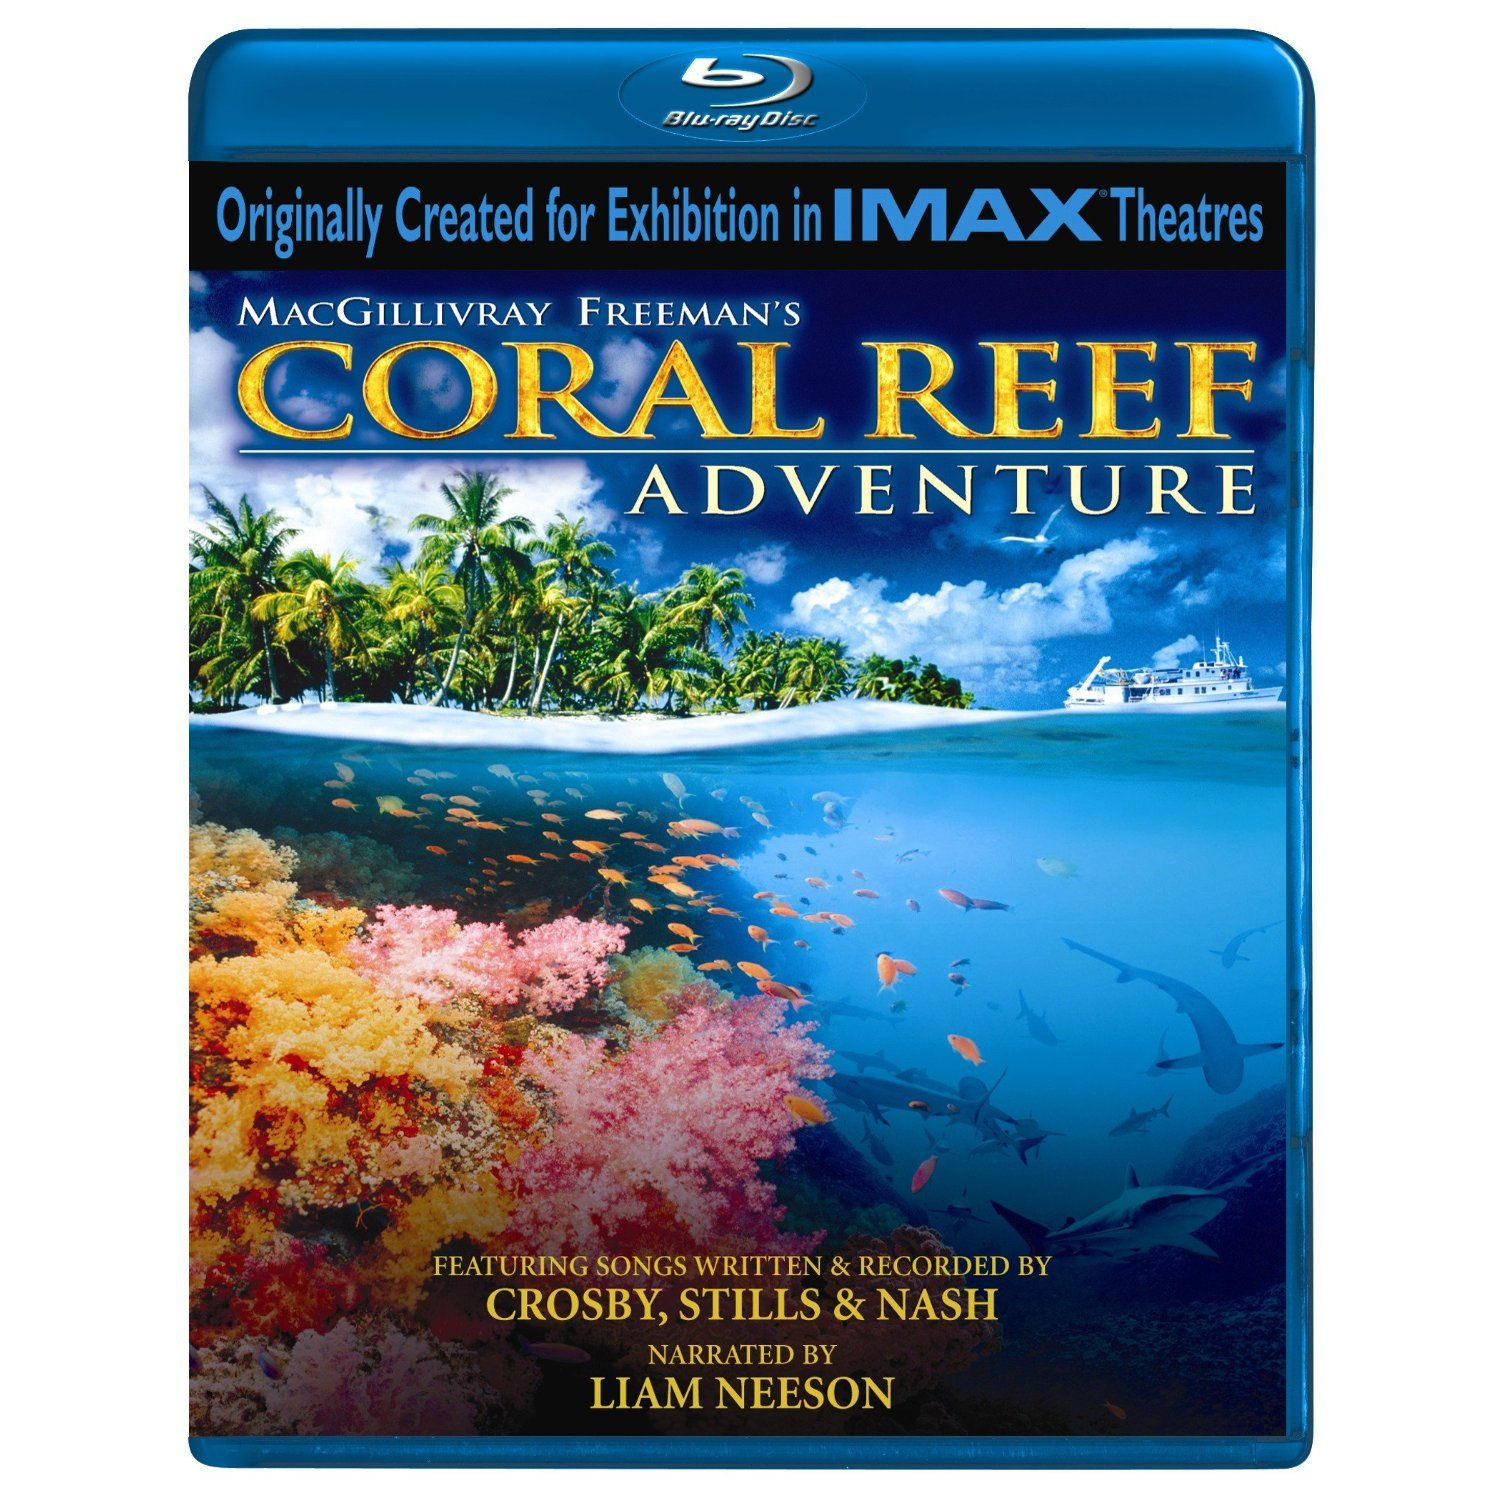 Imax Coral Reef Adventure Review (With images) Imax